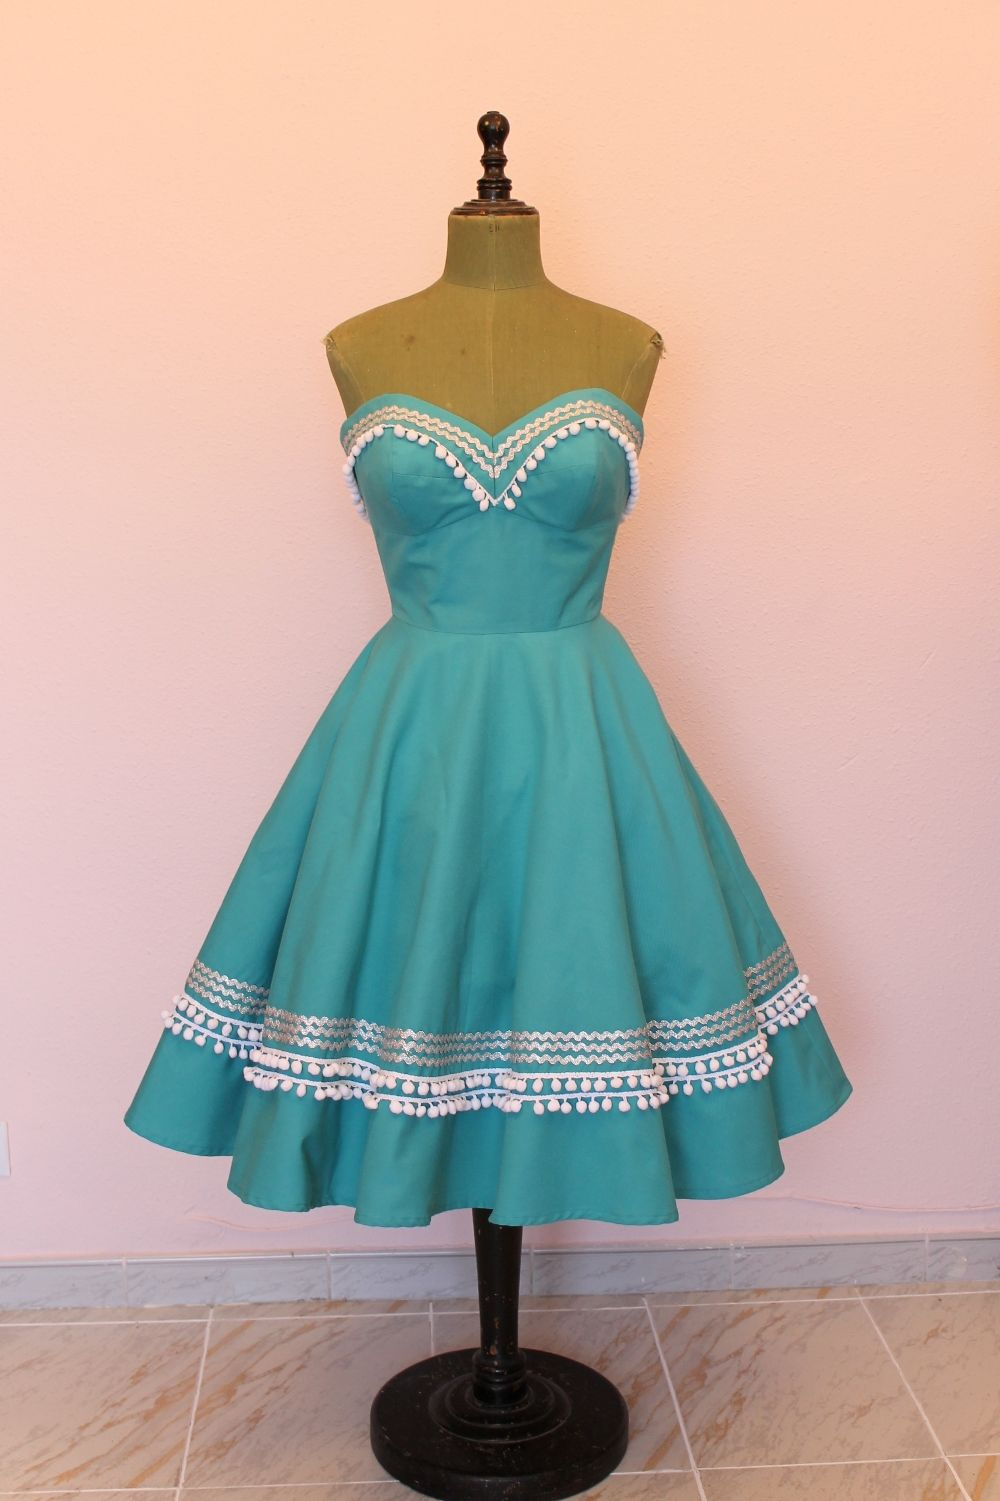 Blanca Dress in turquoise | Clothes | Pinterest | Mexican dresses ...